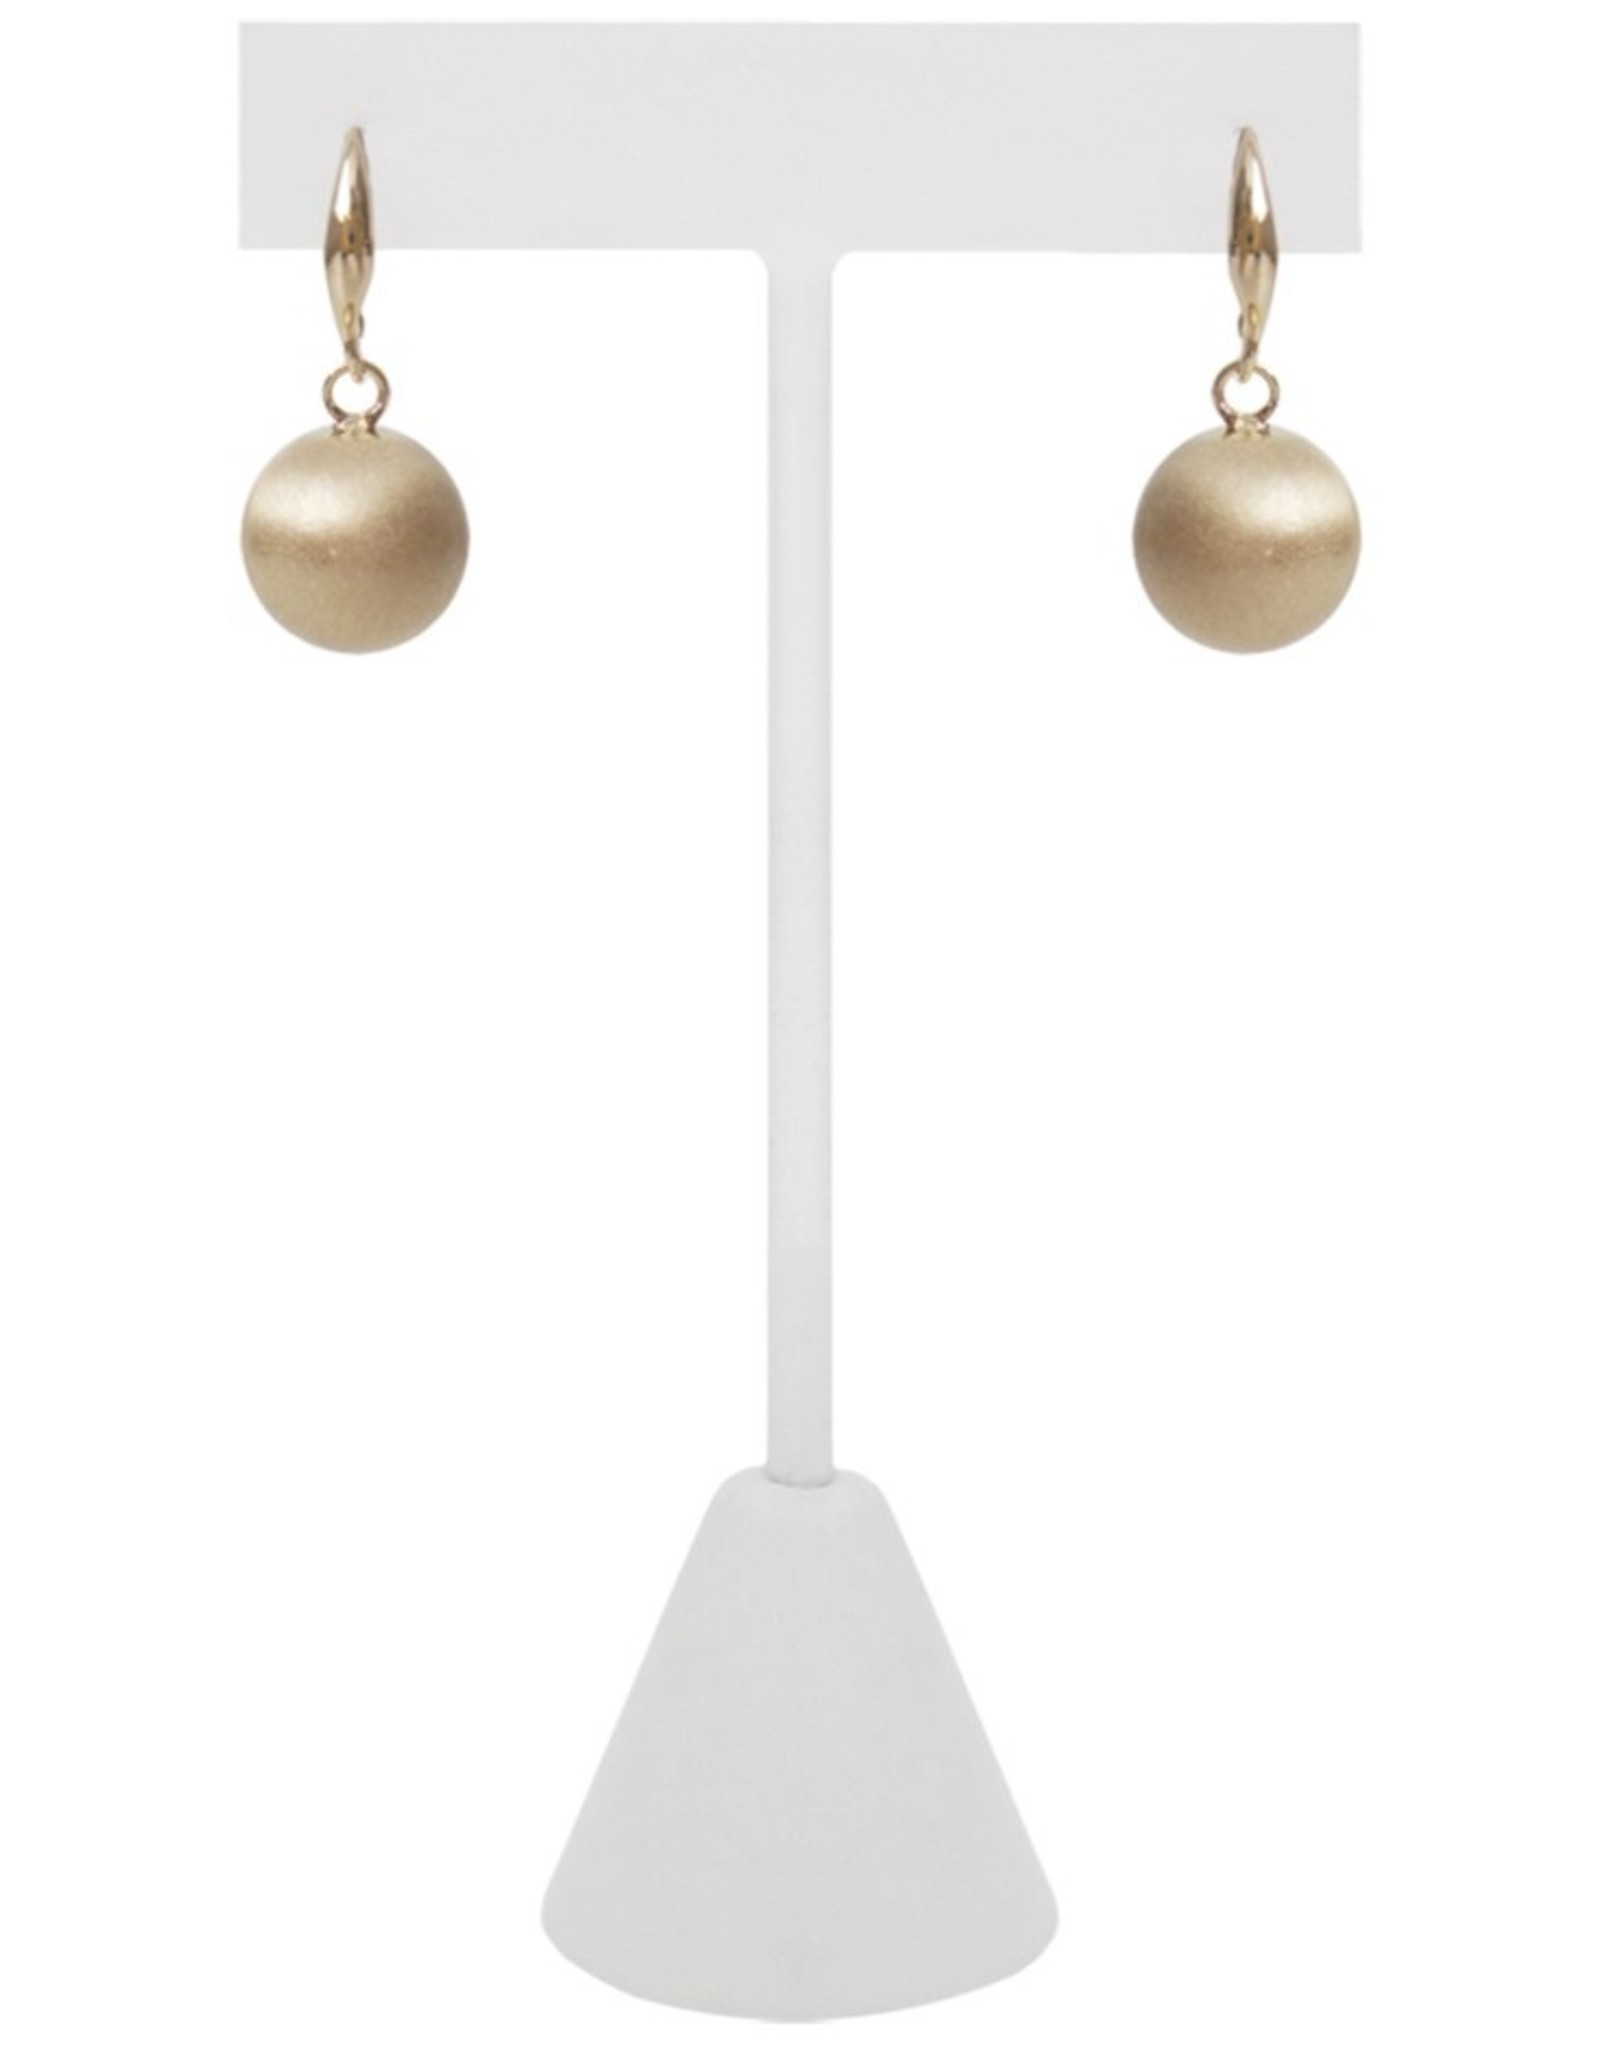 Drop Earrings in Brushed Finish-gold